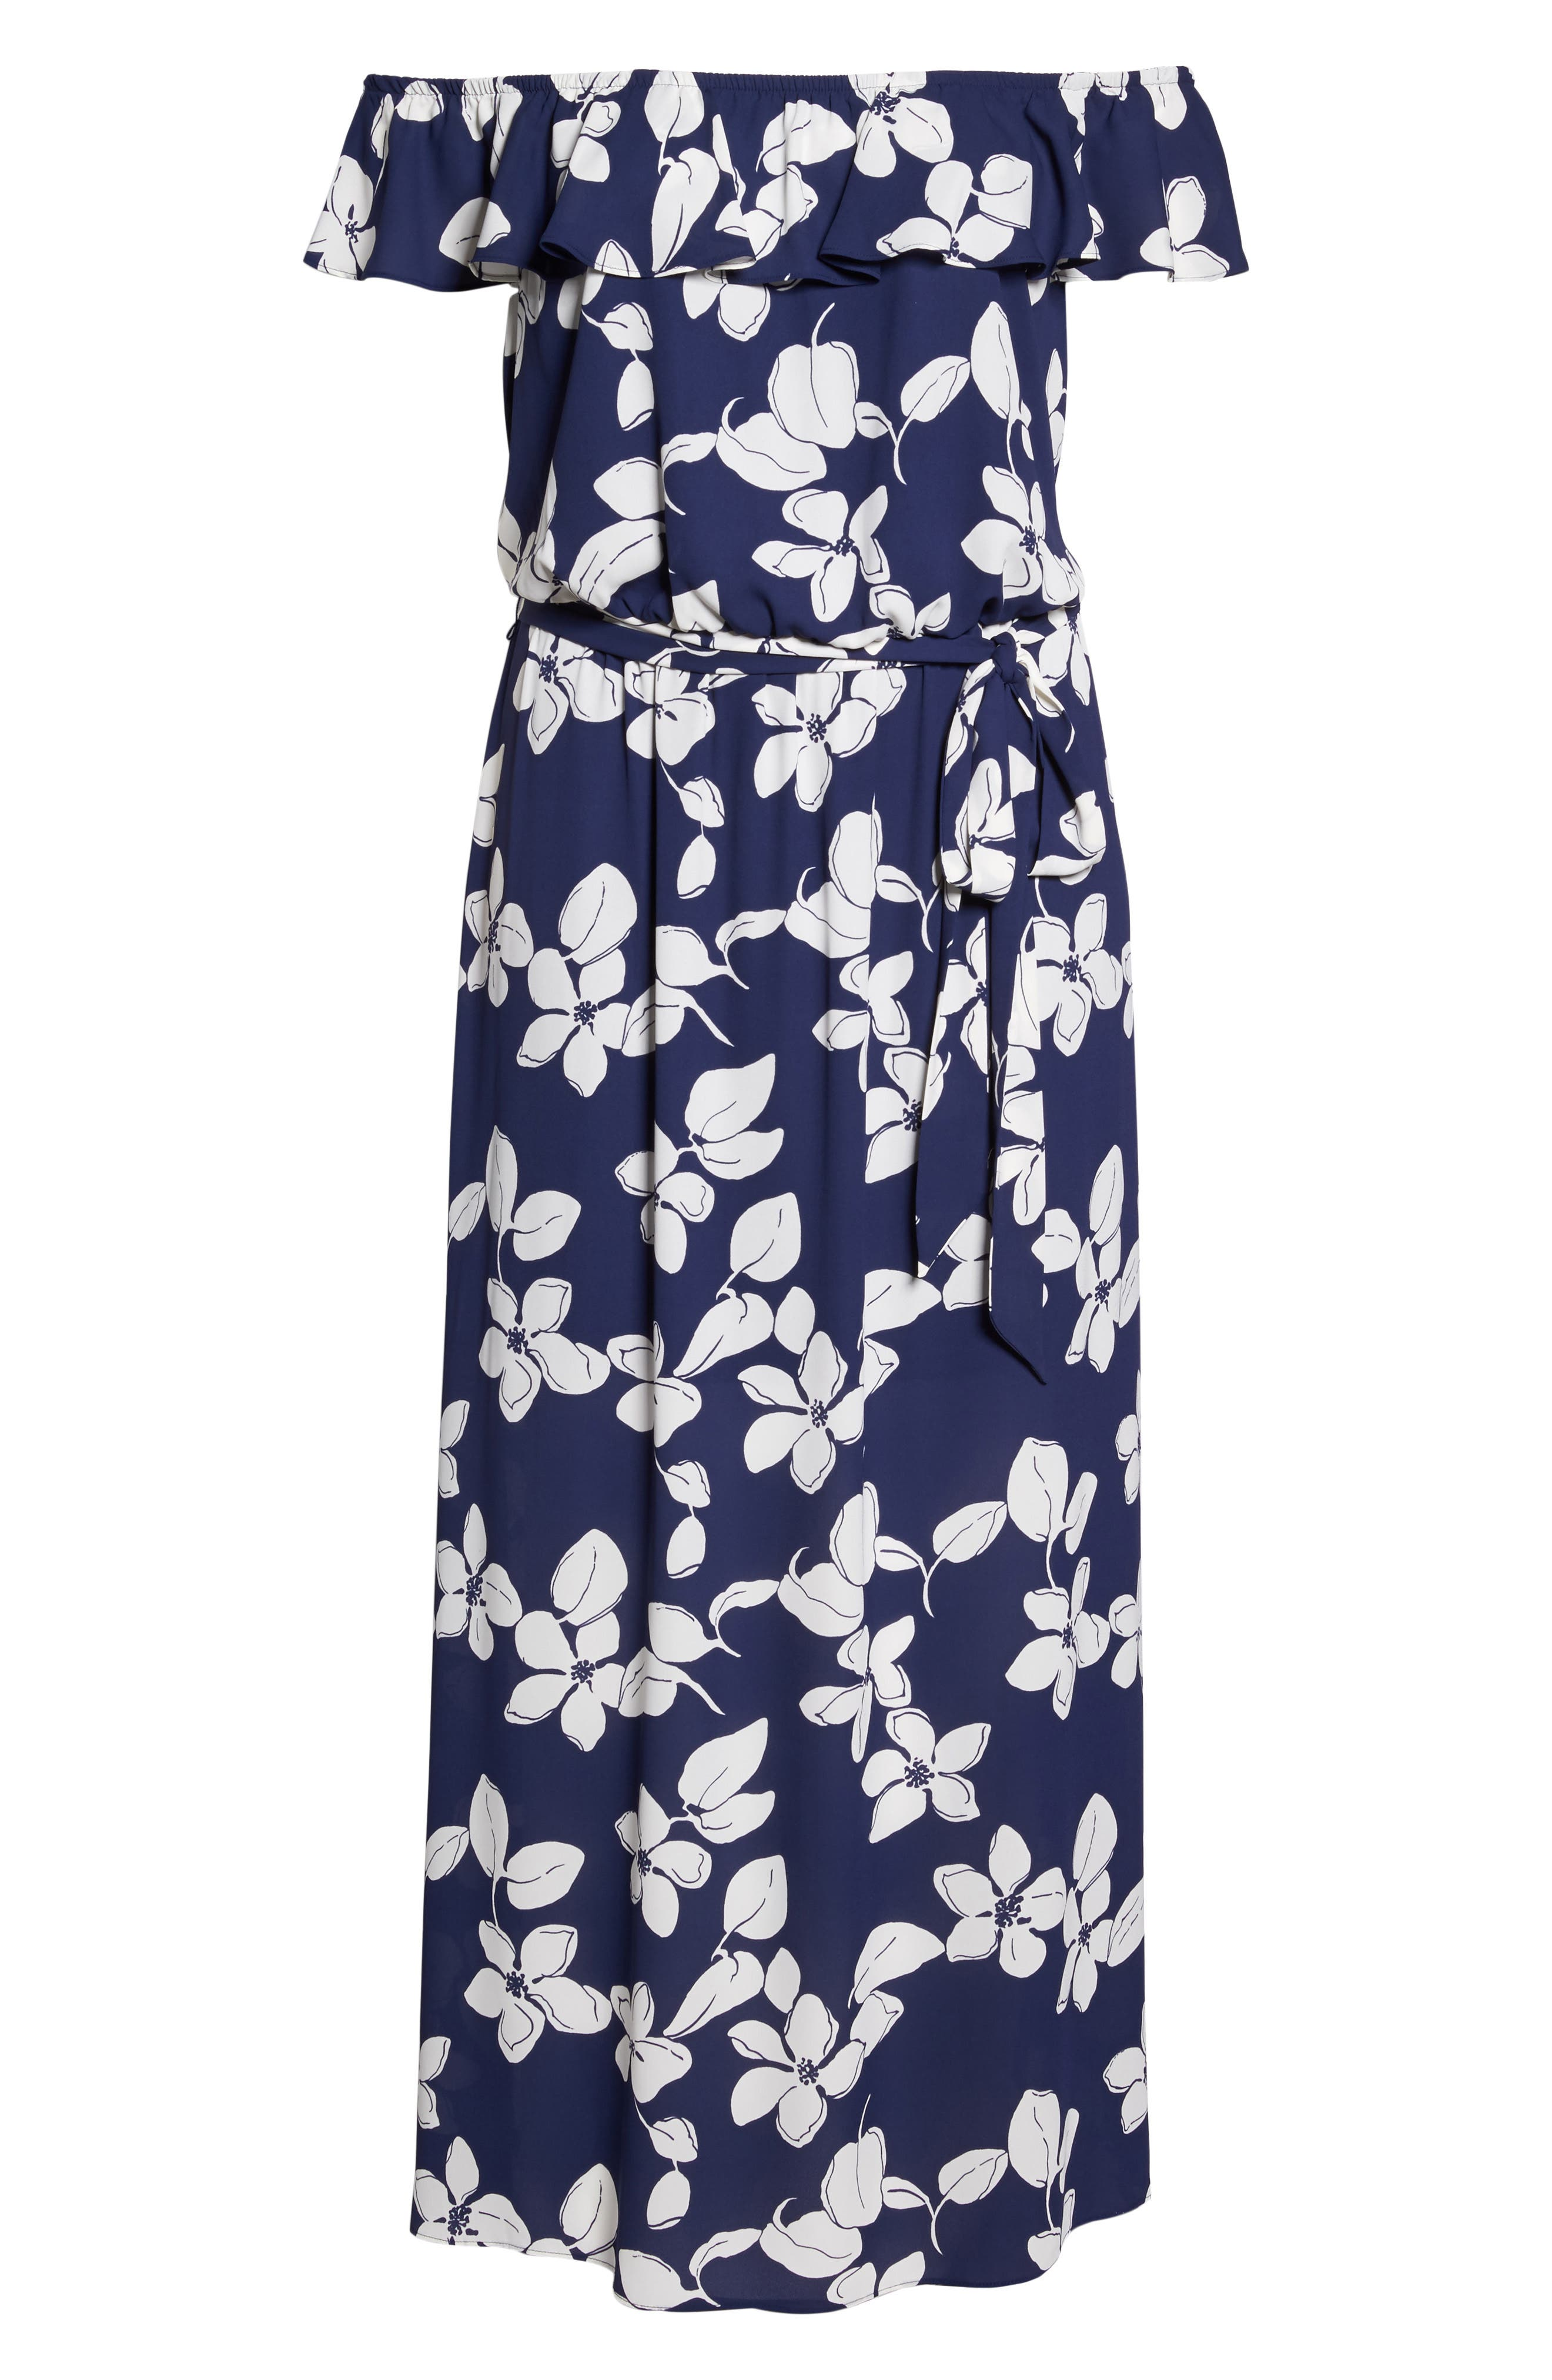 ADRIANNA PAPELL,                             Simple Delight Ruffle Maxi Dress,                             Alternate thumbnail 6, color,                             480